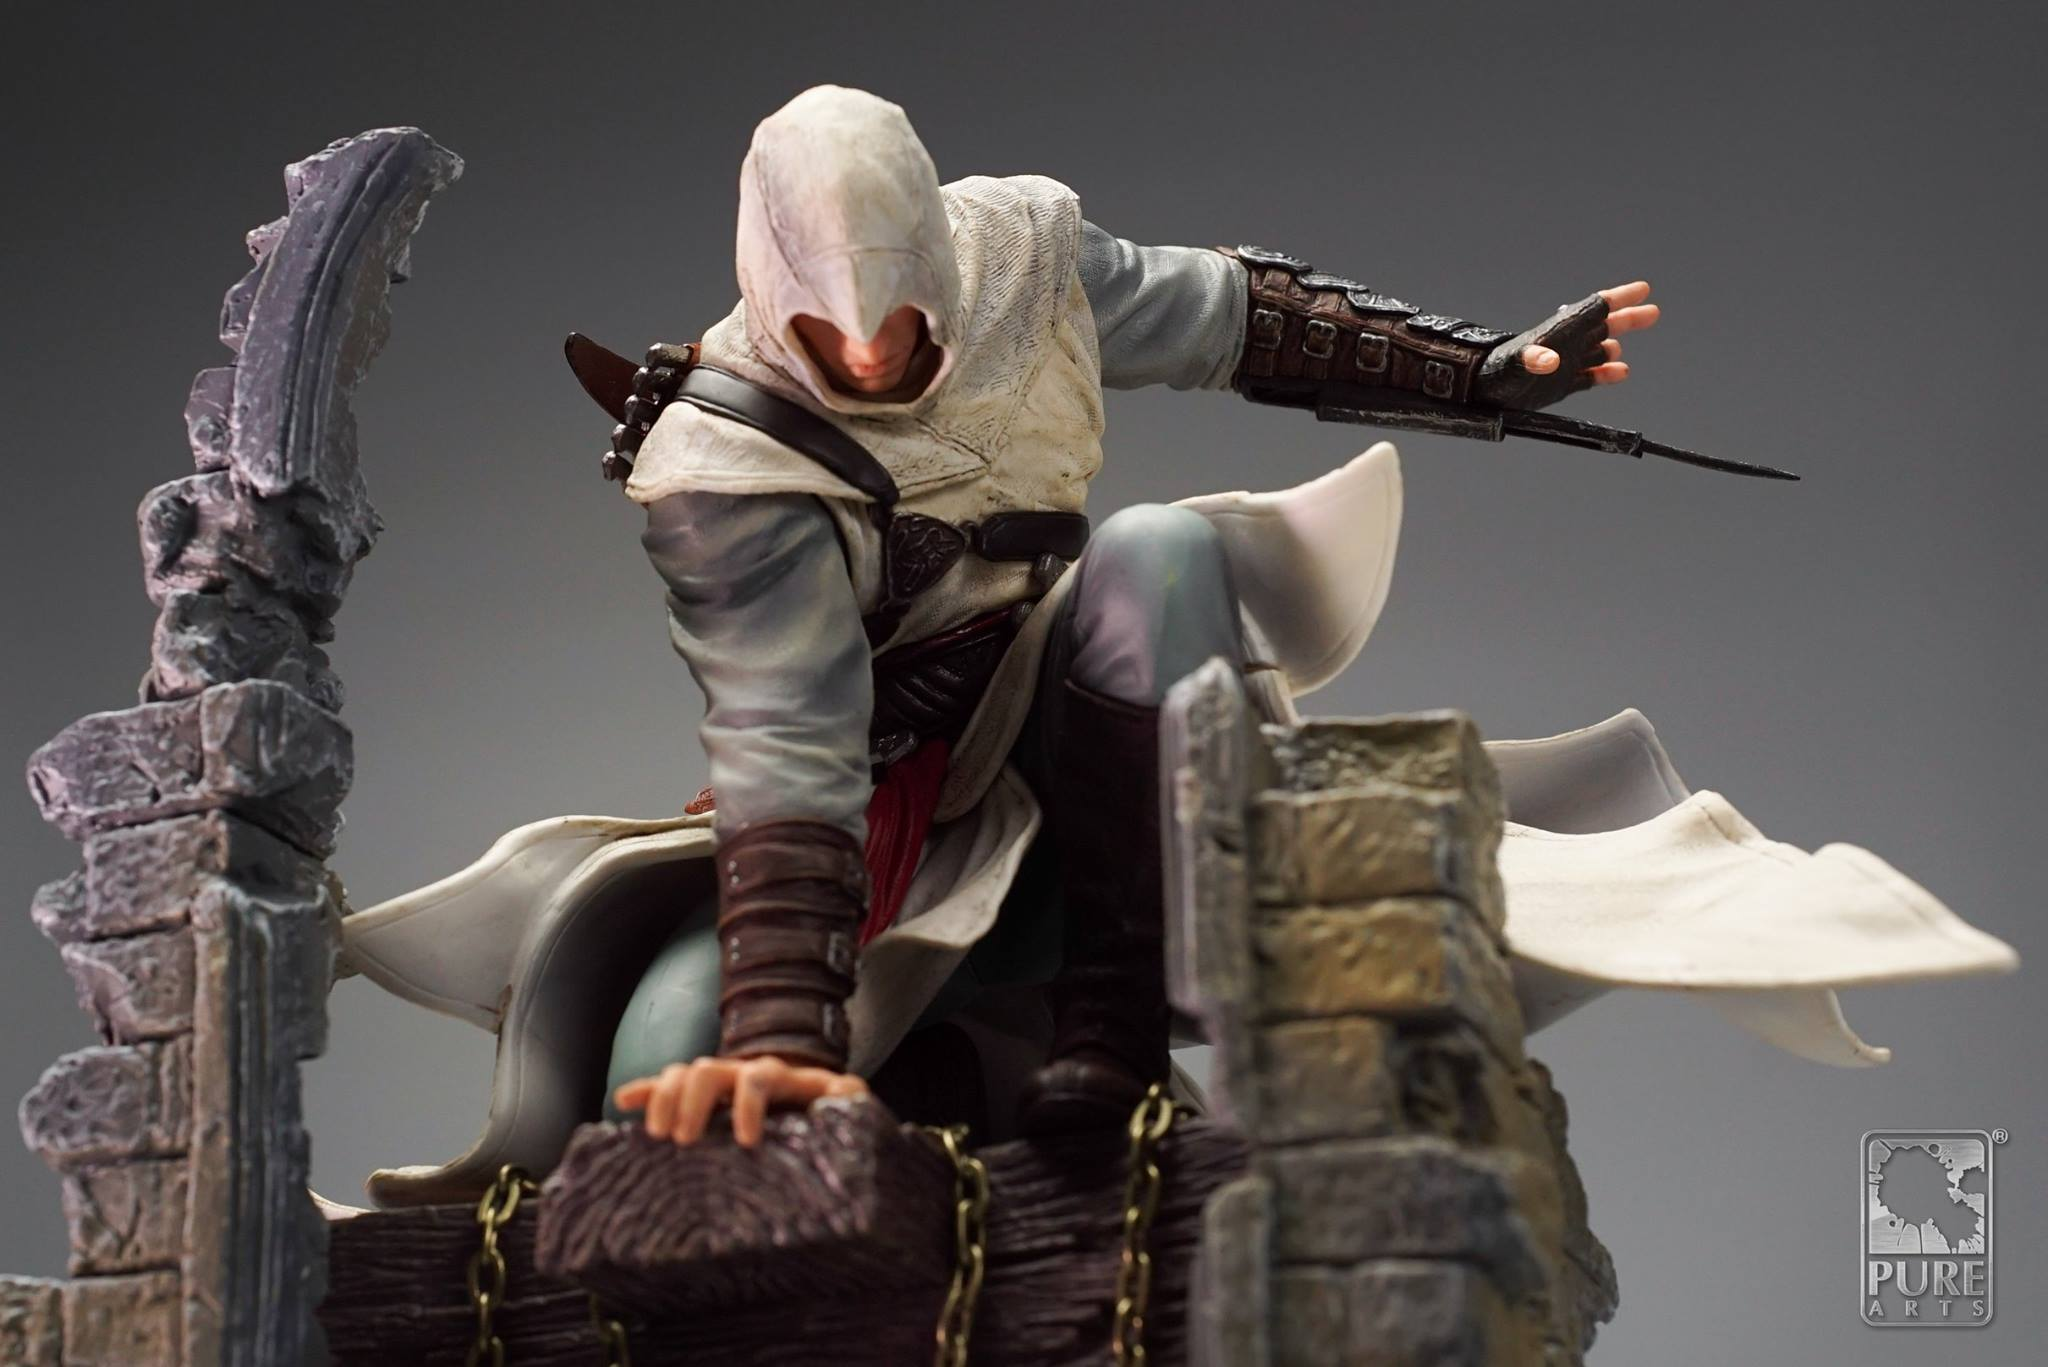 Altair The Legendary Assassin